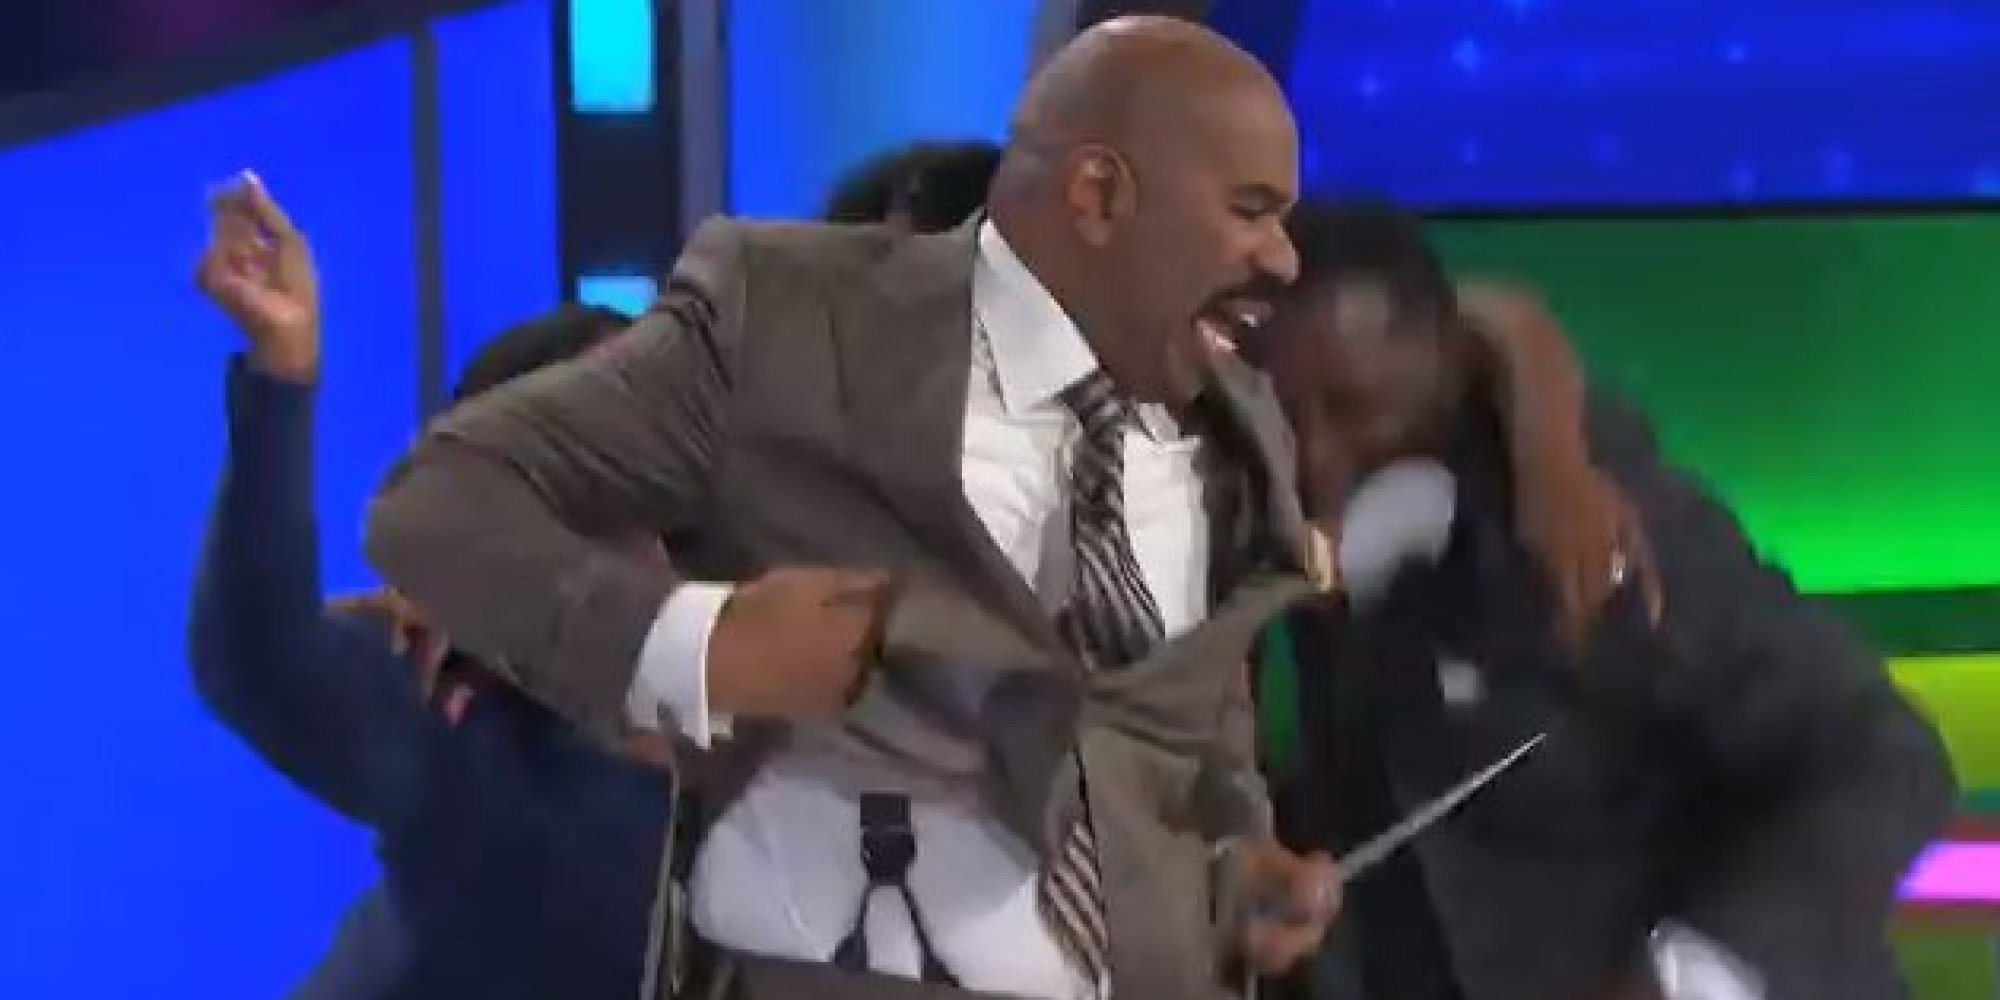 Clothes stores. Steve harvey clothing store